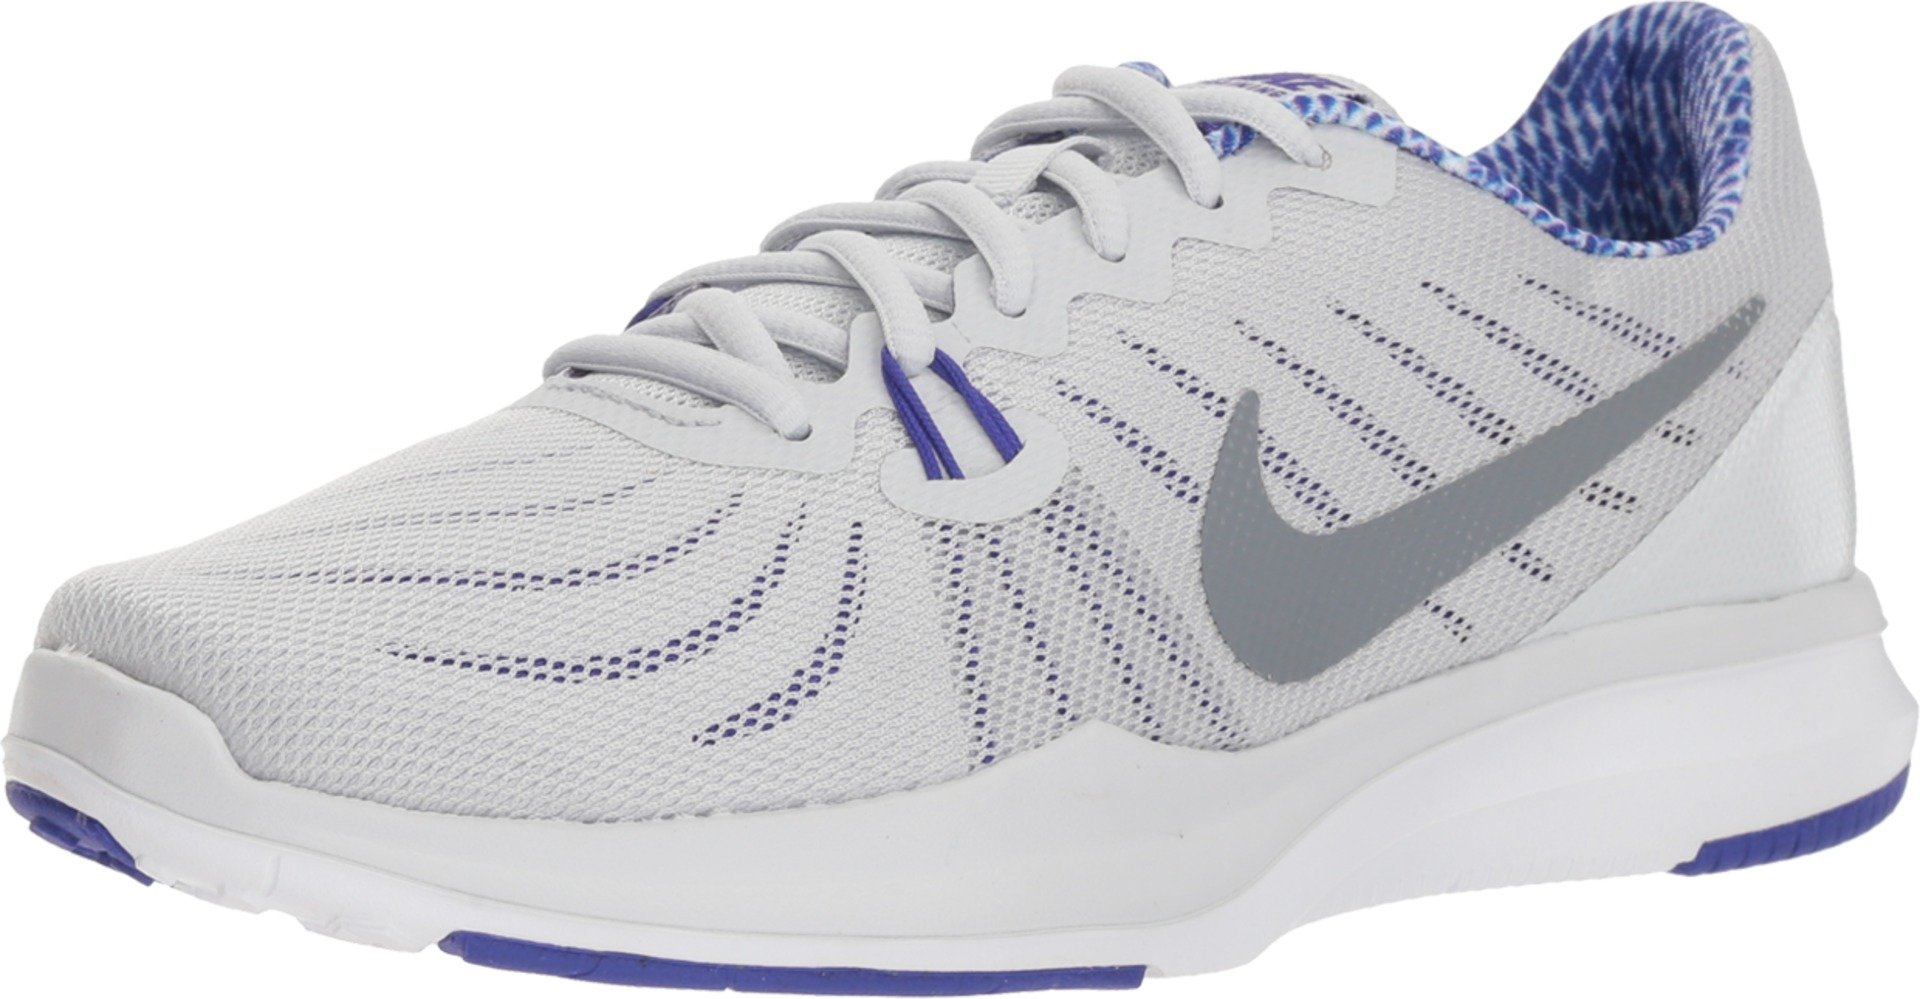 Nike Women's in-Season Trainer 7 Cross (10 M US, Pure Platinum)